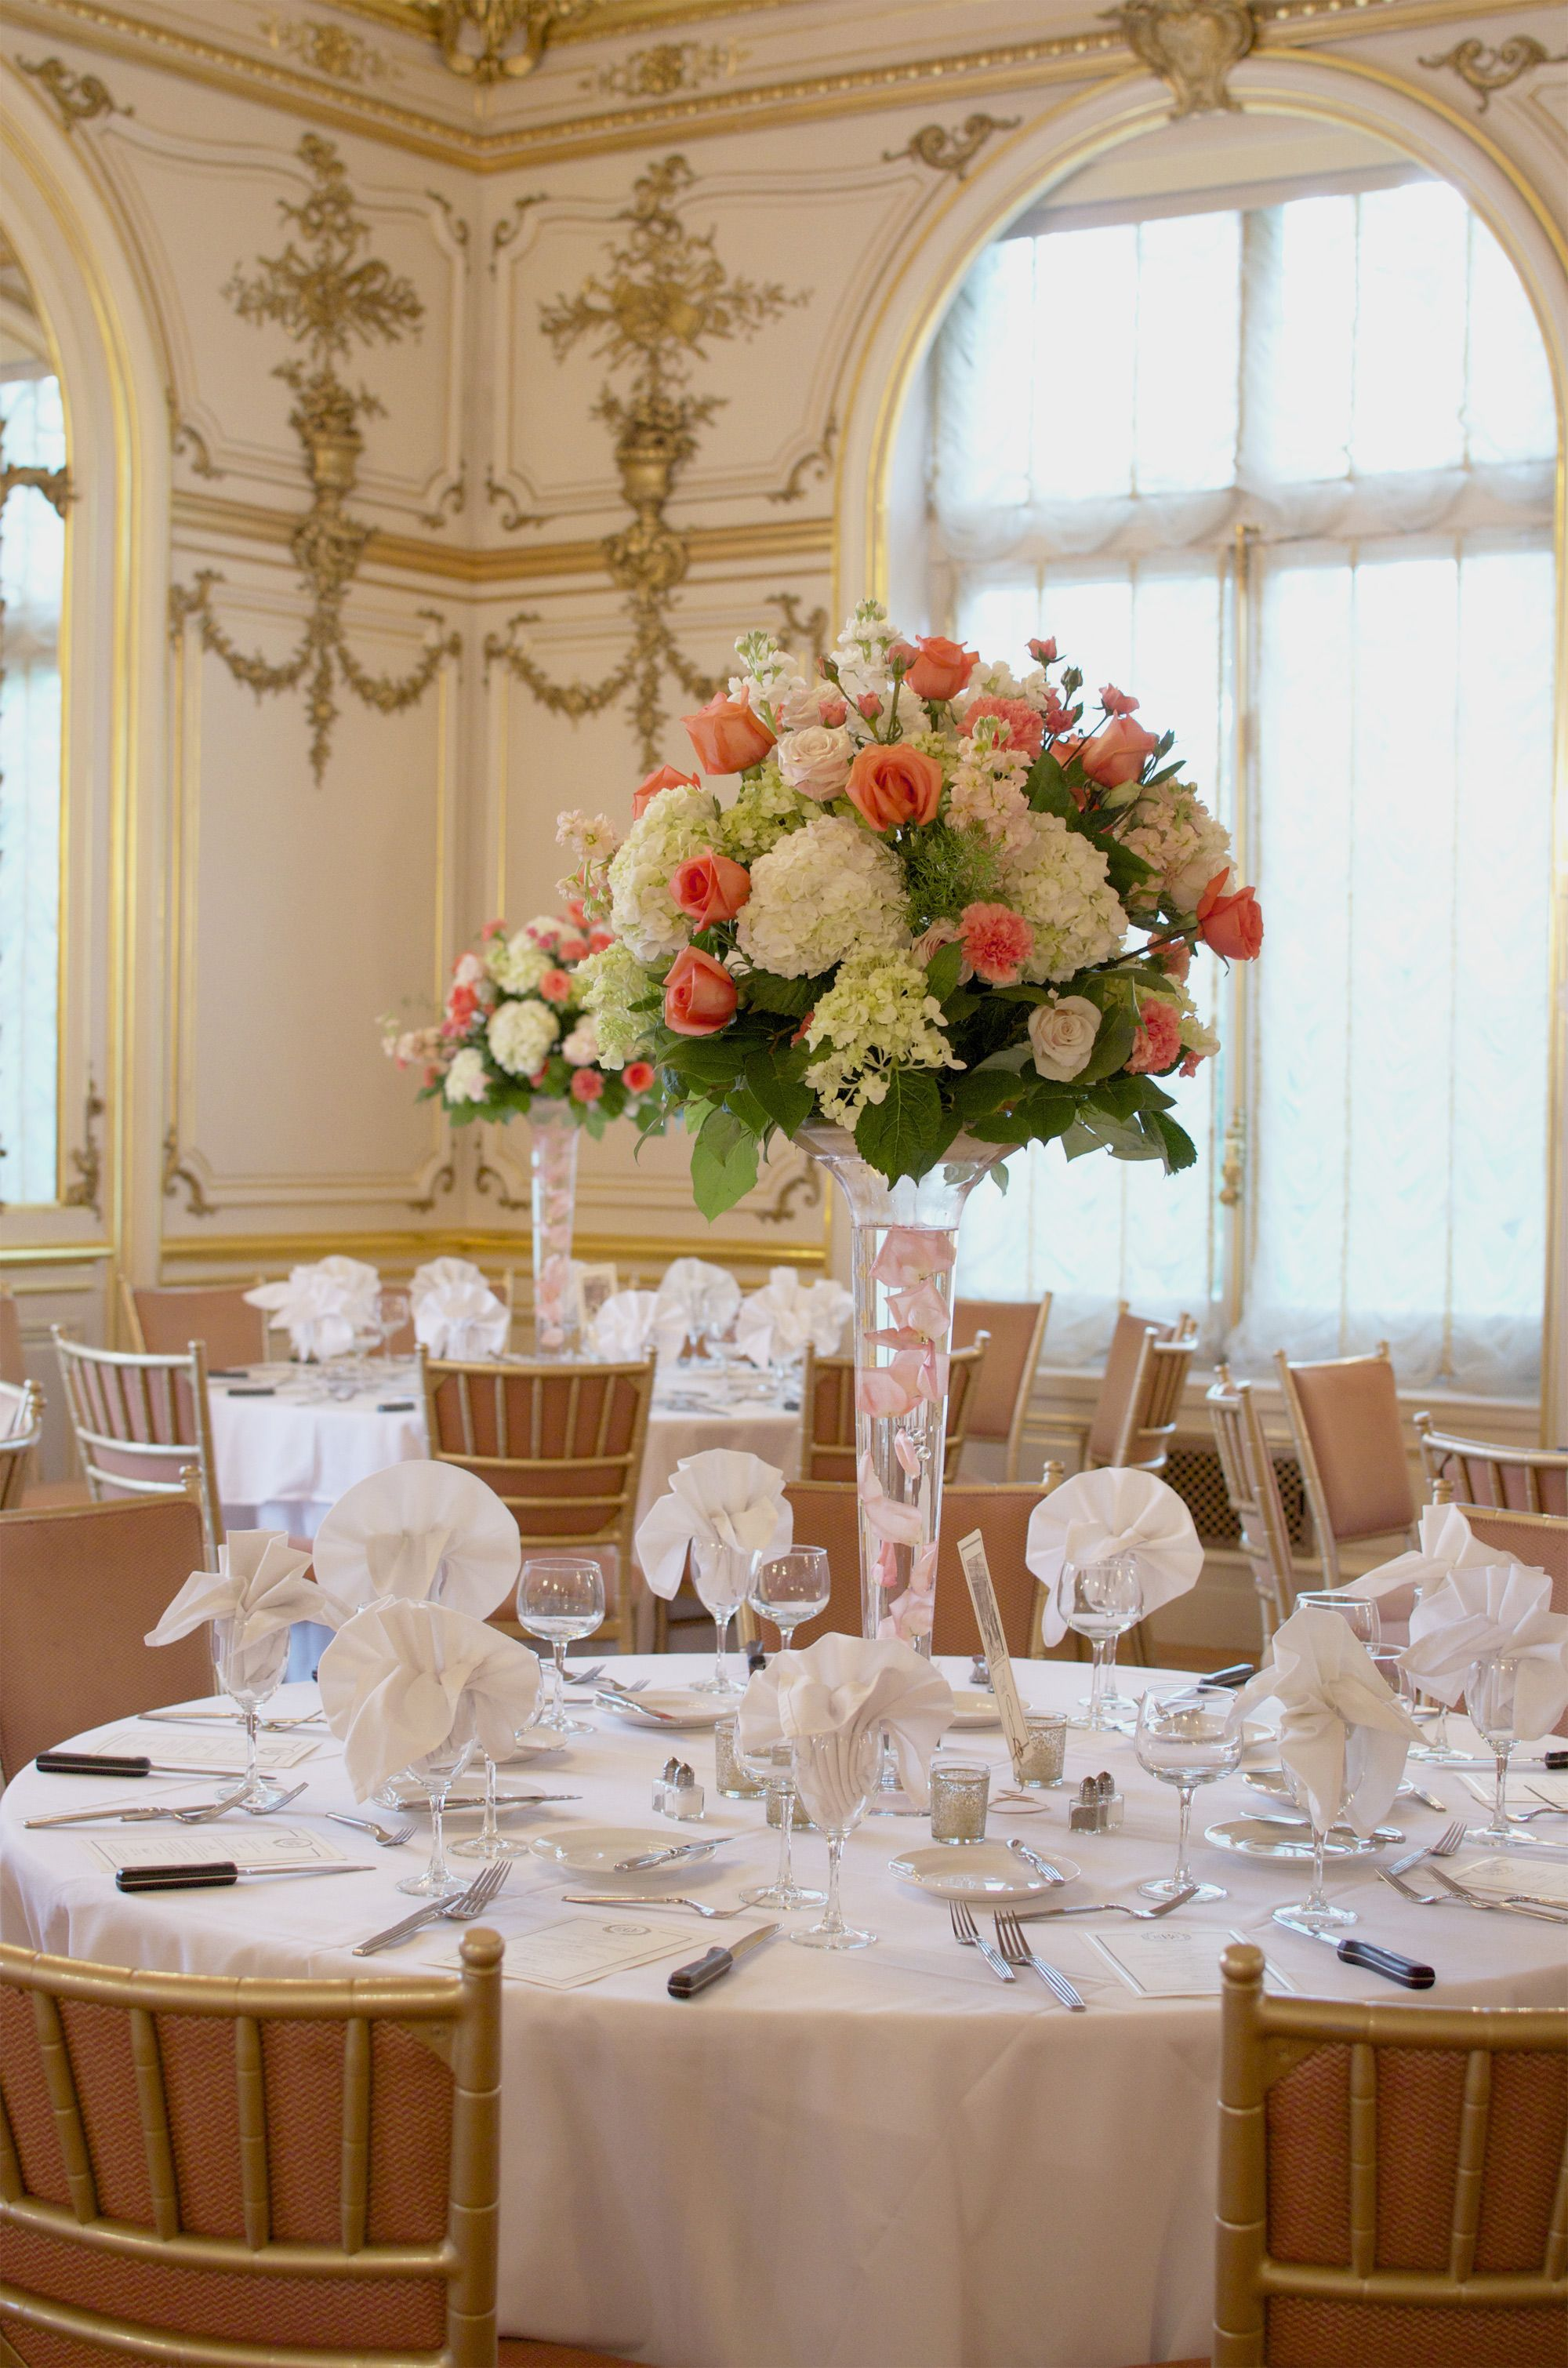 Soft Elegant And Romantic Tall Floral Centerpiece